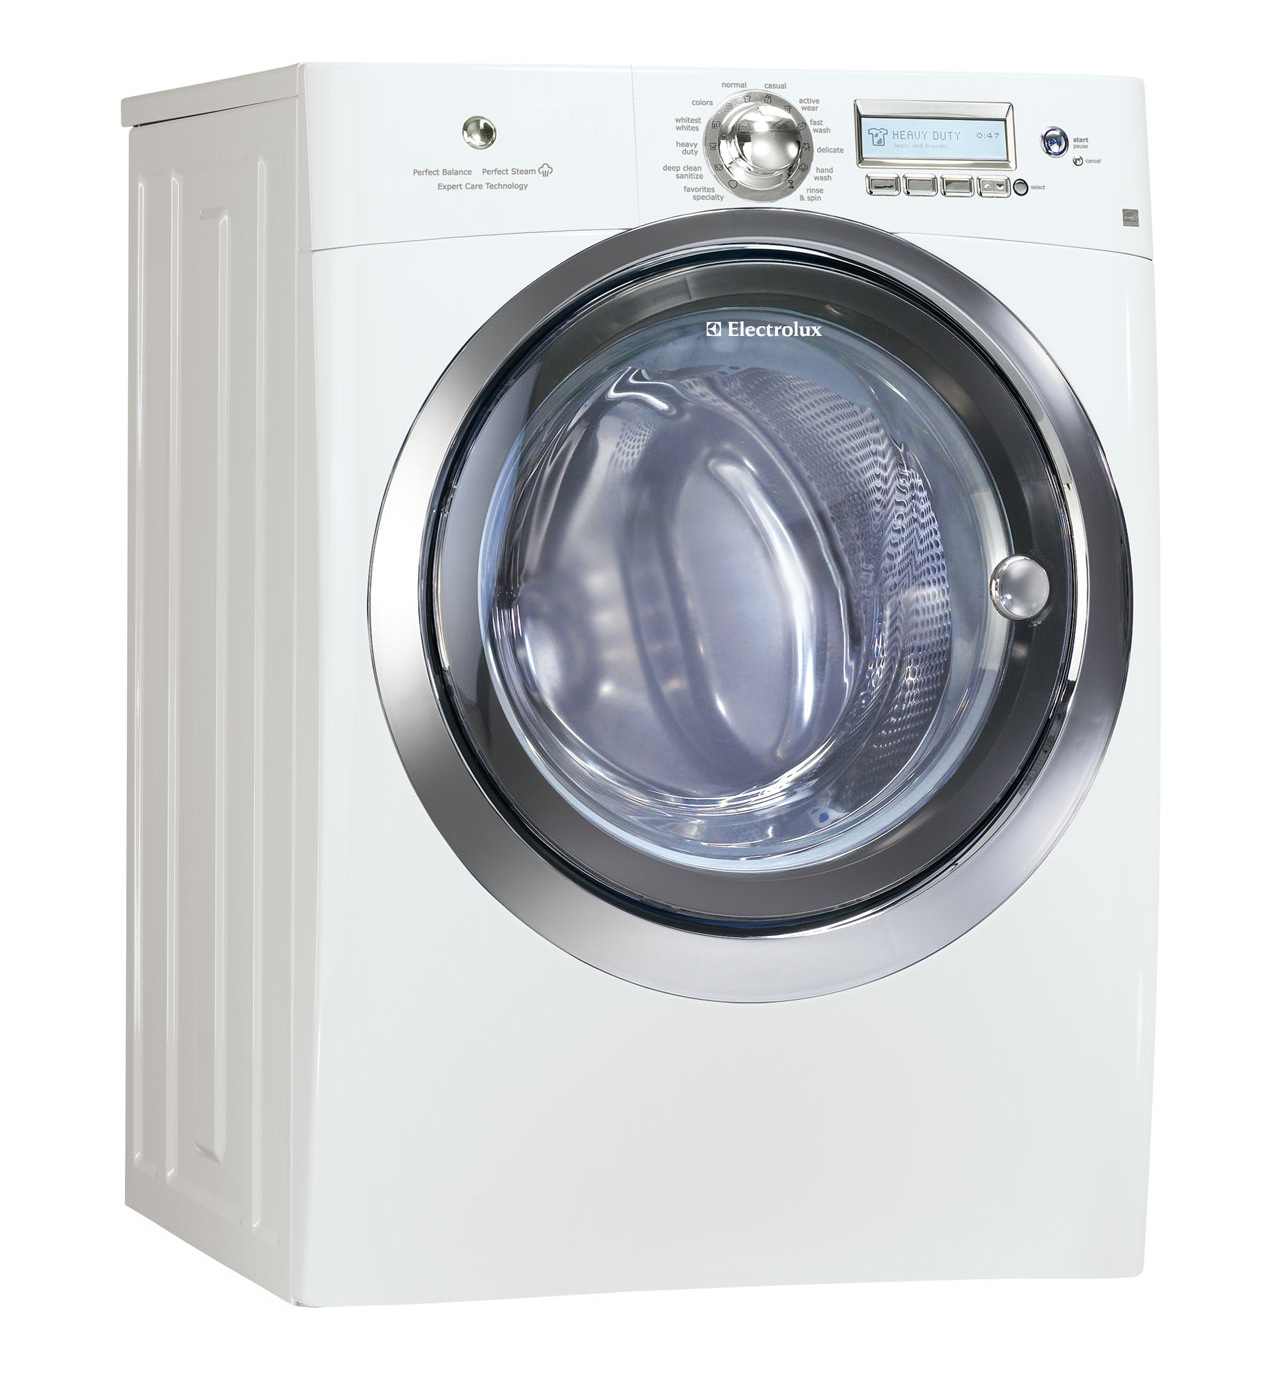 Electrolux white steam washer and steam electric dryer set Electrolux washer and dryer